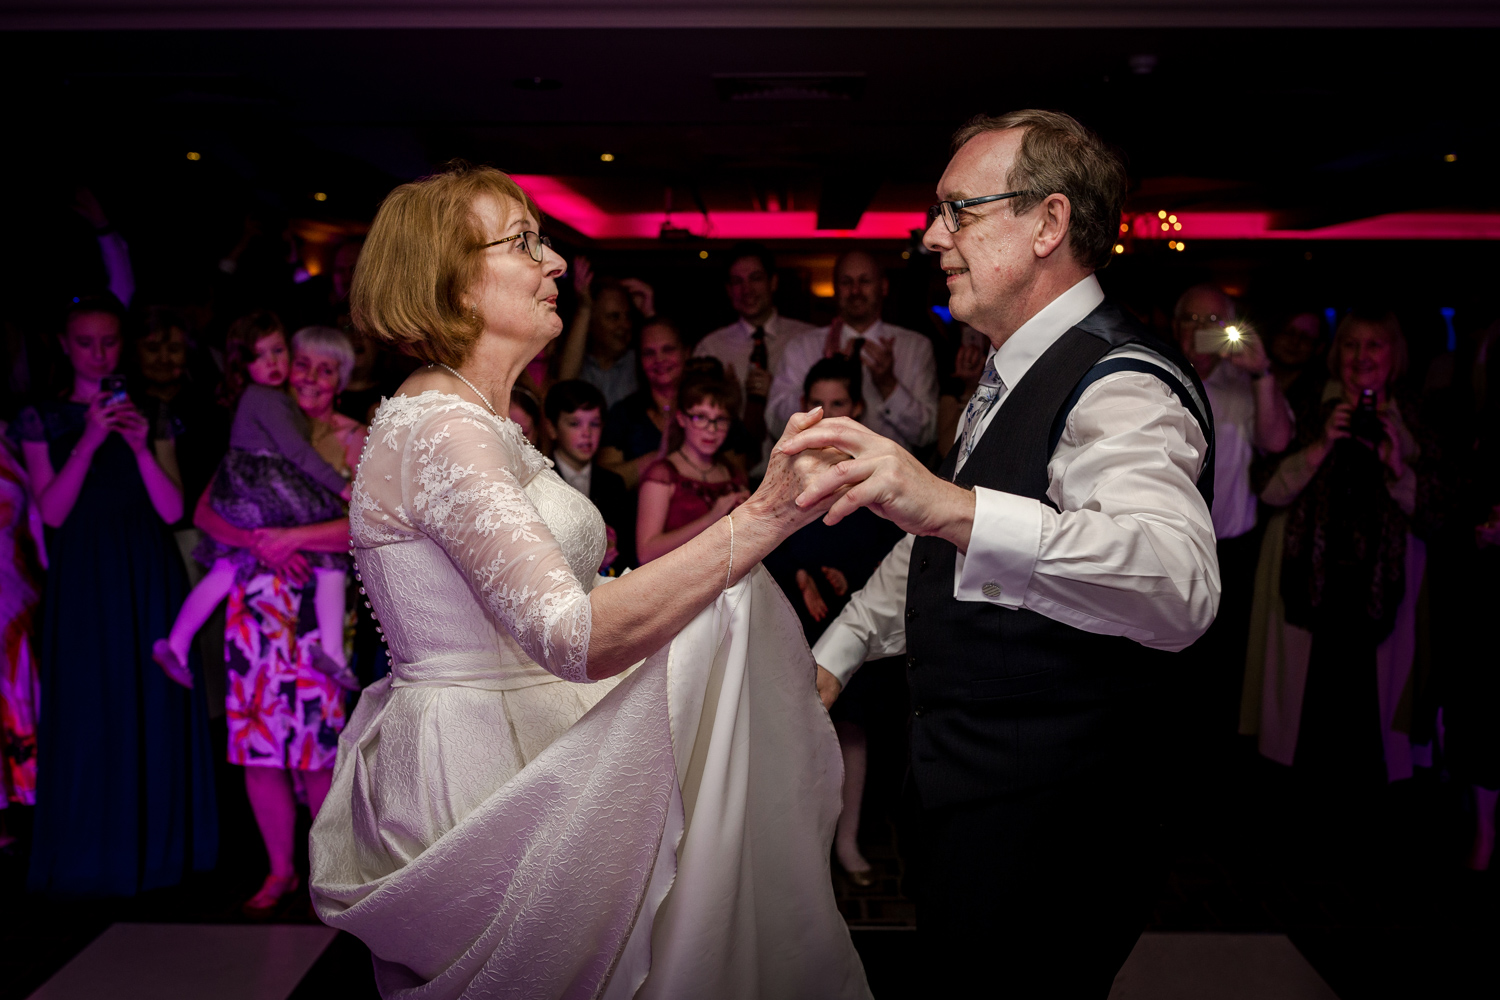 First dance at the cottons hotel